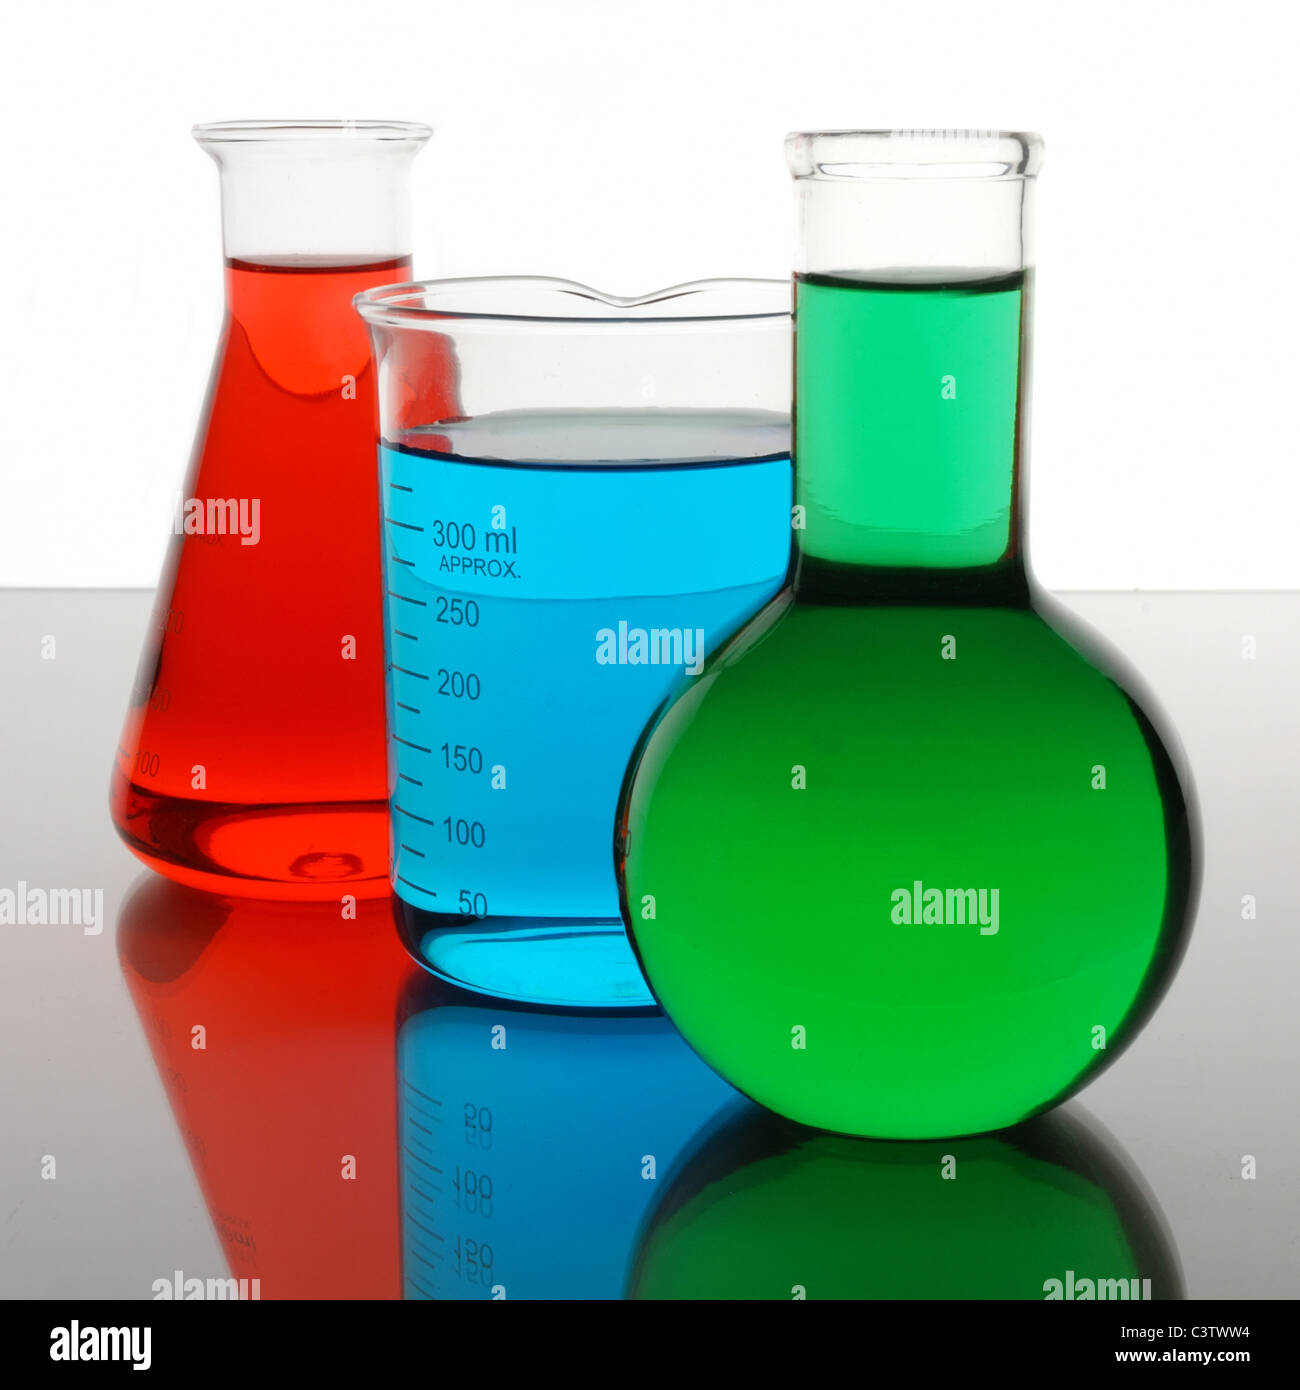 laboratory beaker and flasks containing red, blue, green liquids - Stock Image